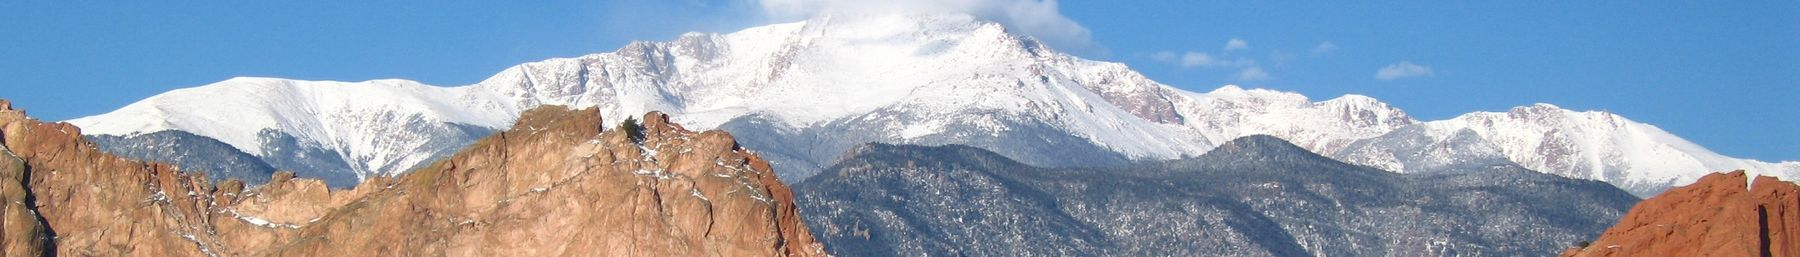 Pikes Peak from the Garden of the Gods banner.jpg